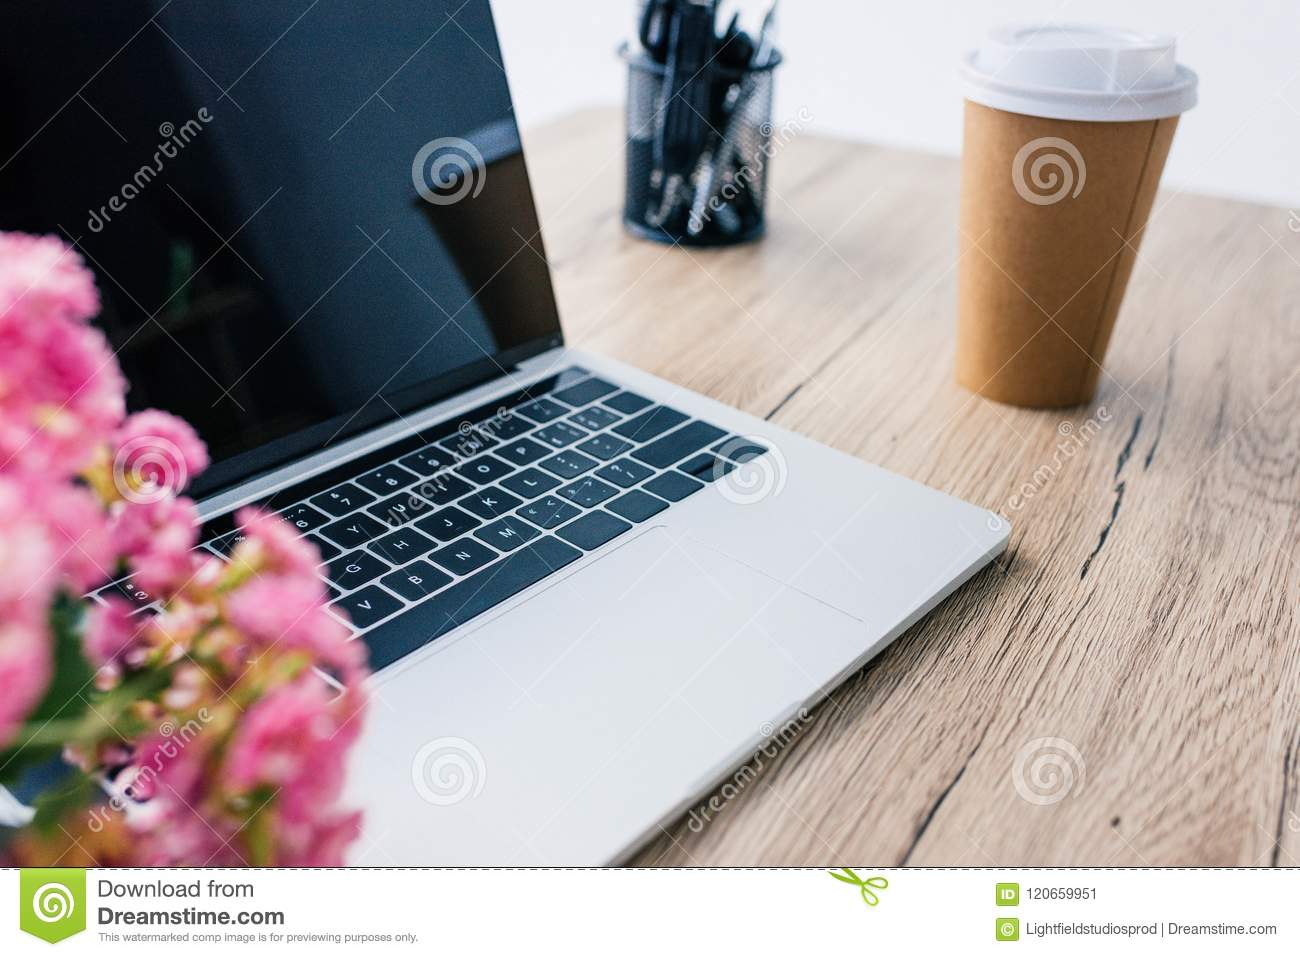 closeup view of laptop with blank screen, flowers, paper cup of coffee and stationery